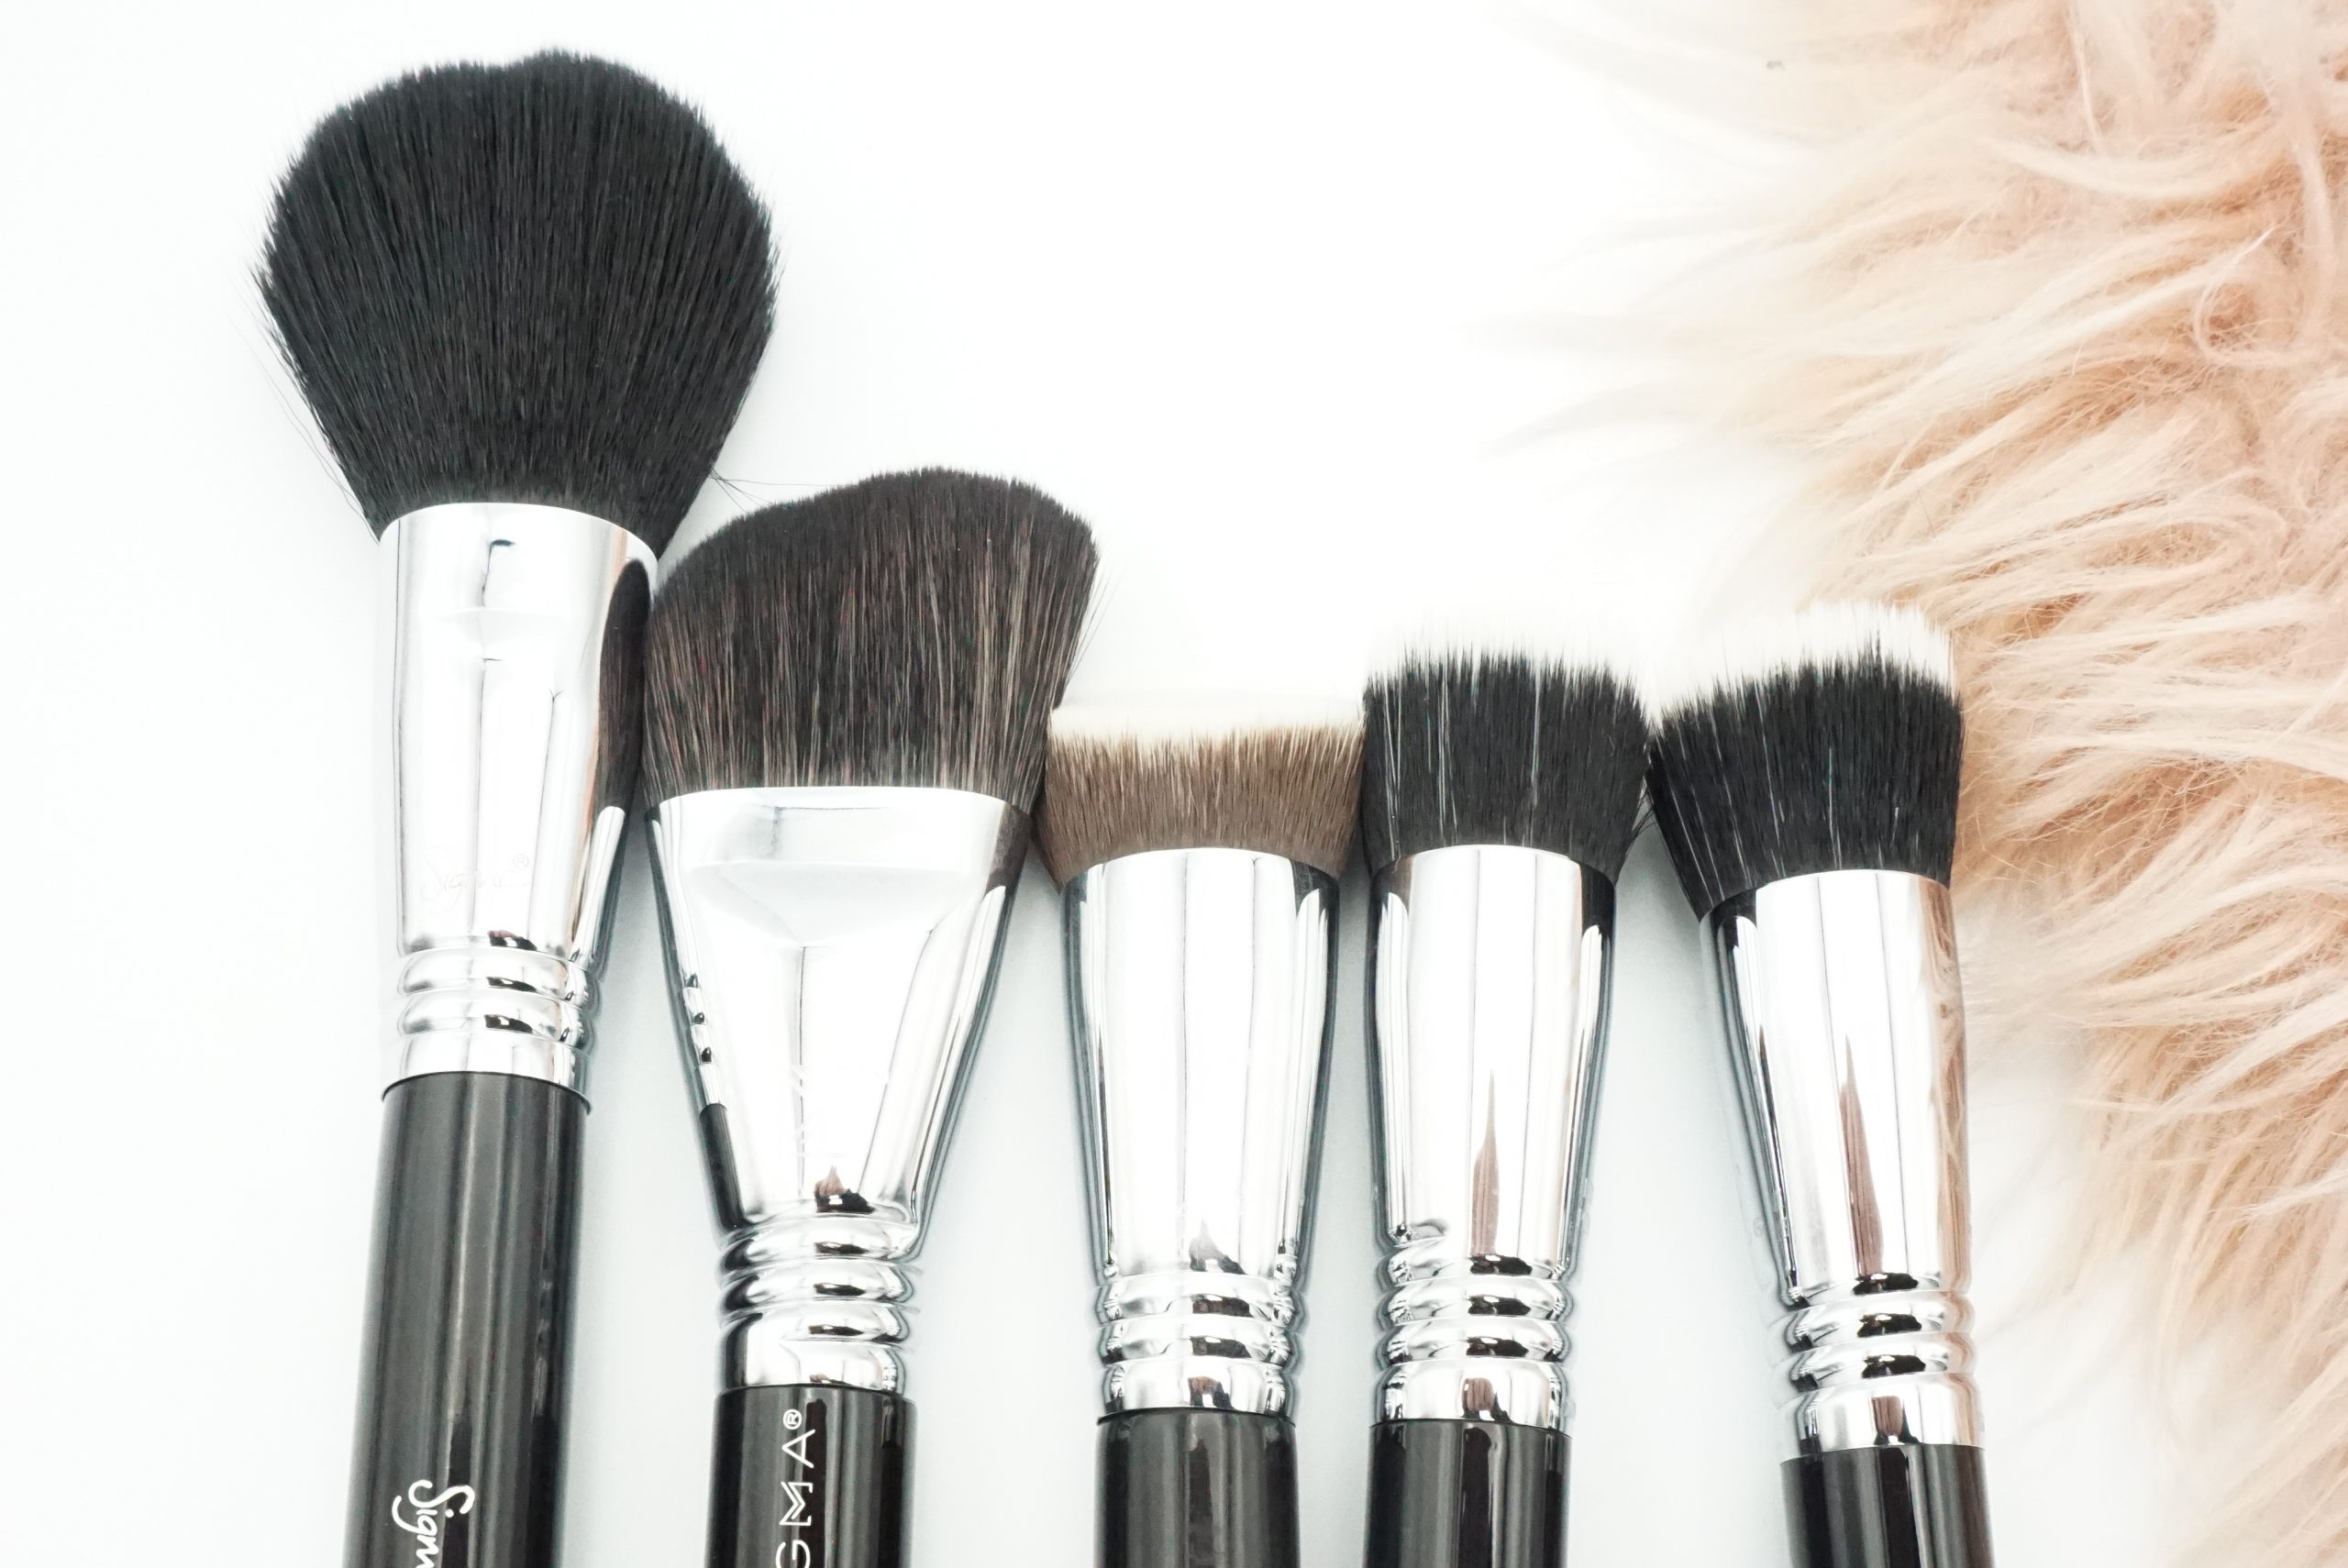 The Sigma Brushes I Own